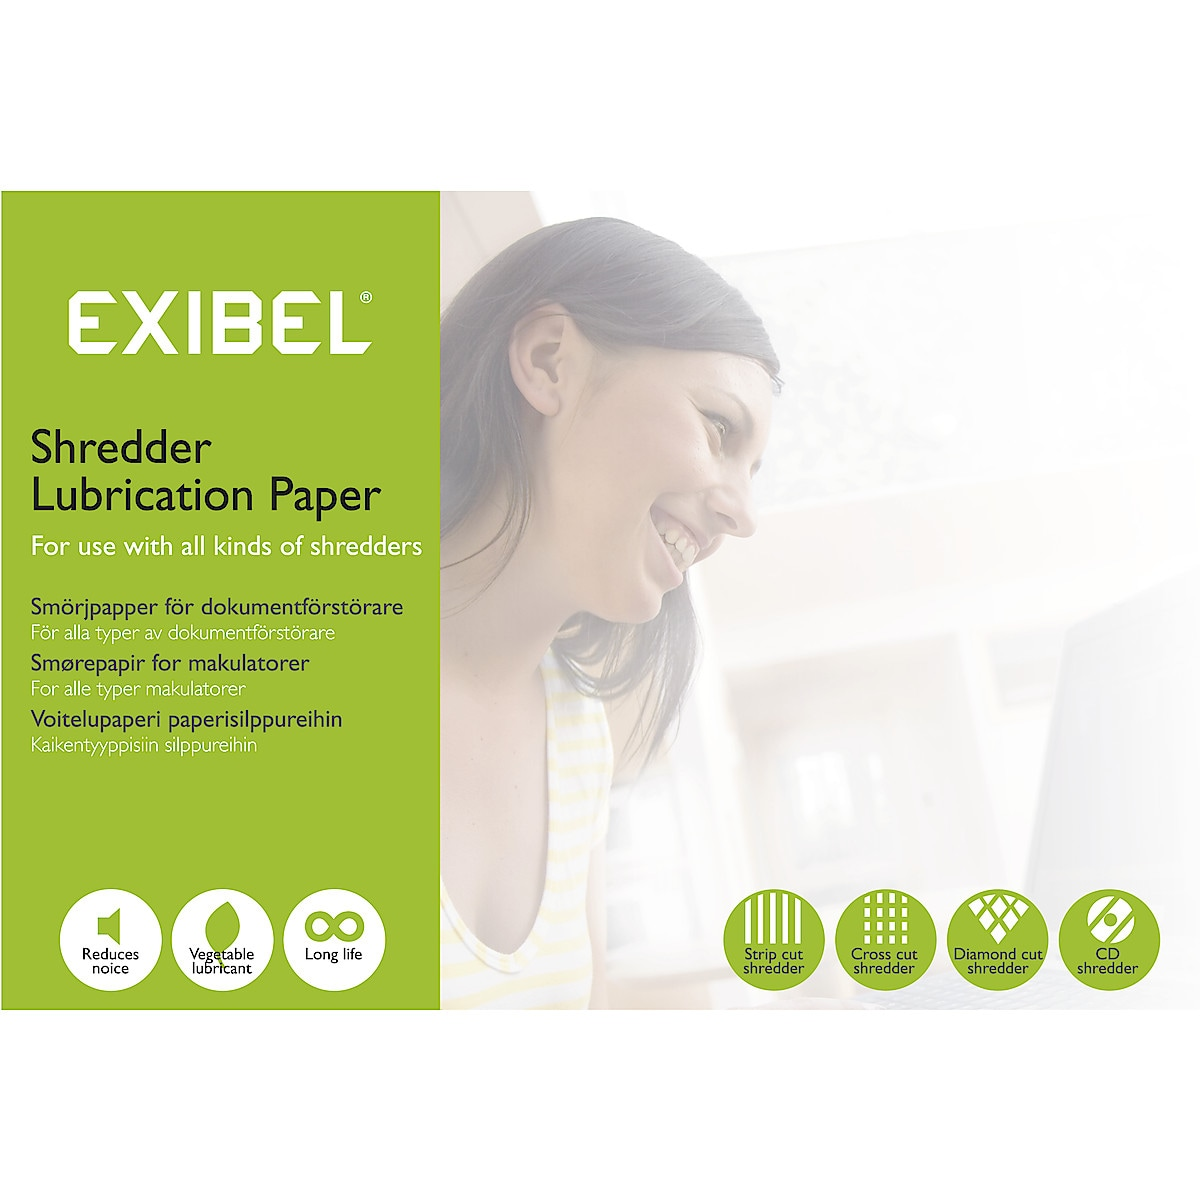 Exibel Shredder Lubrication Paper